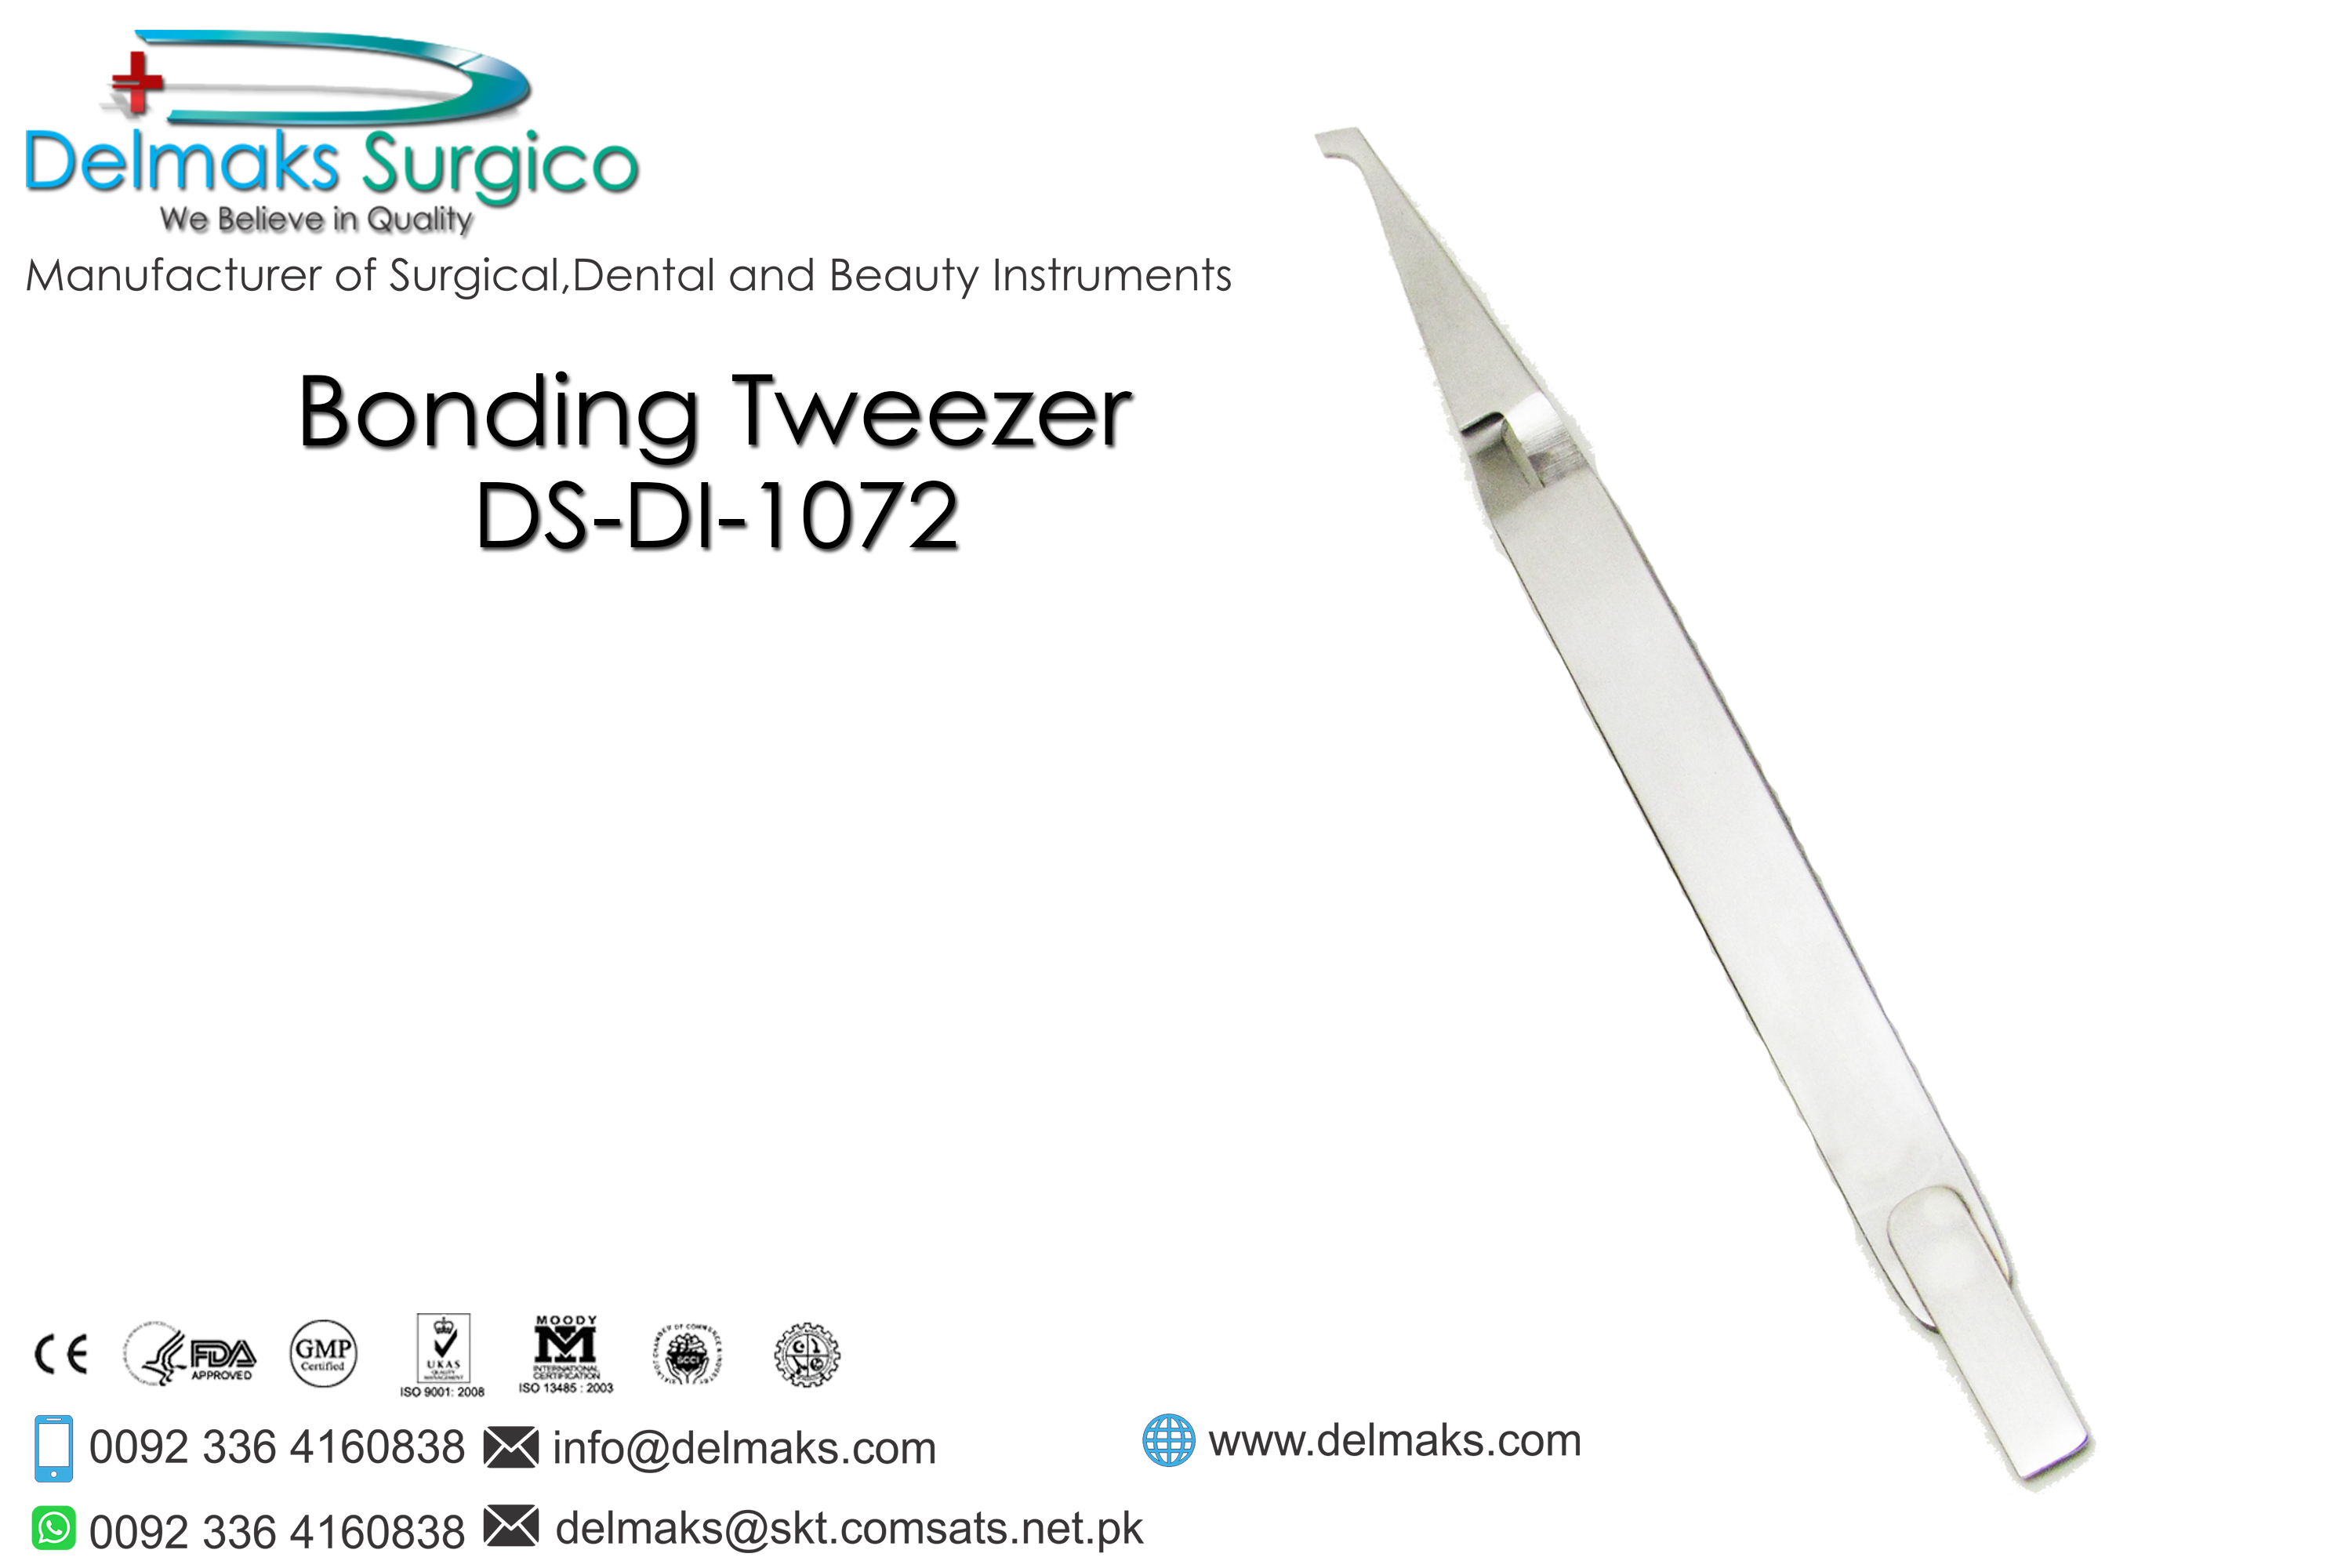 Bonding Tweezer-Bracket Tweezers-Orthodontics-Dental Instruments-Delmaks Surgico